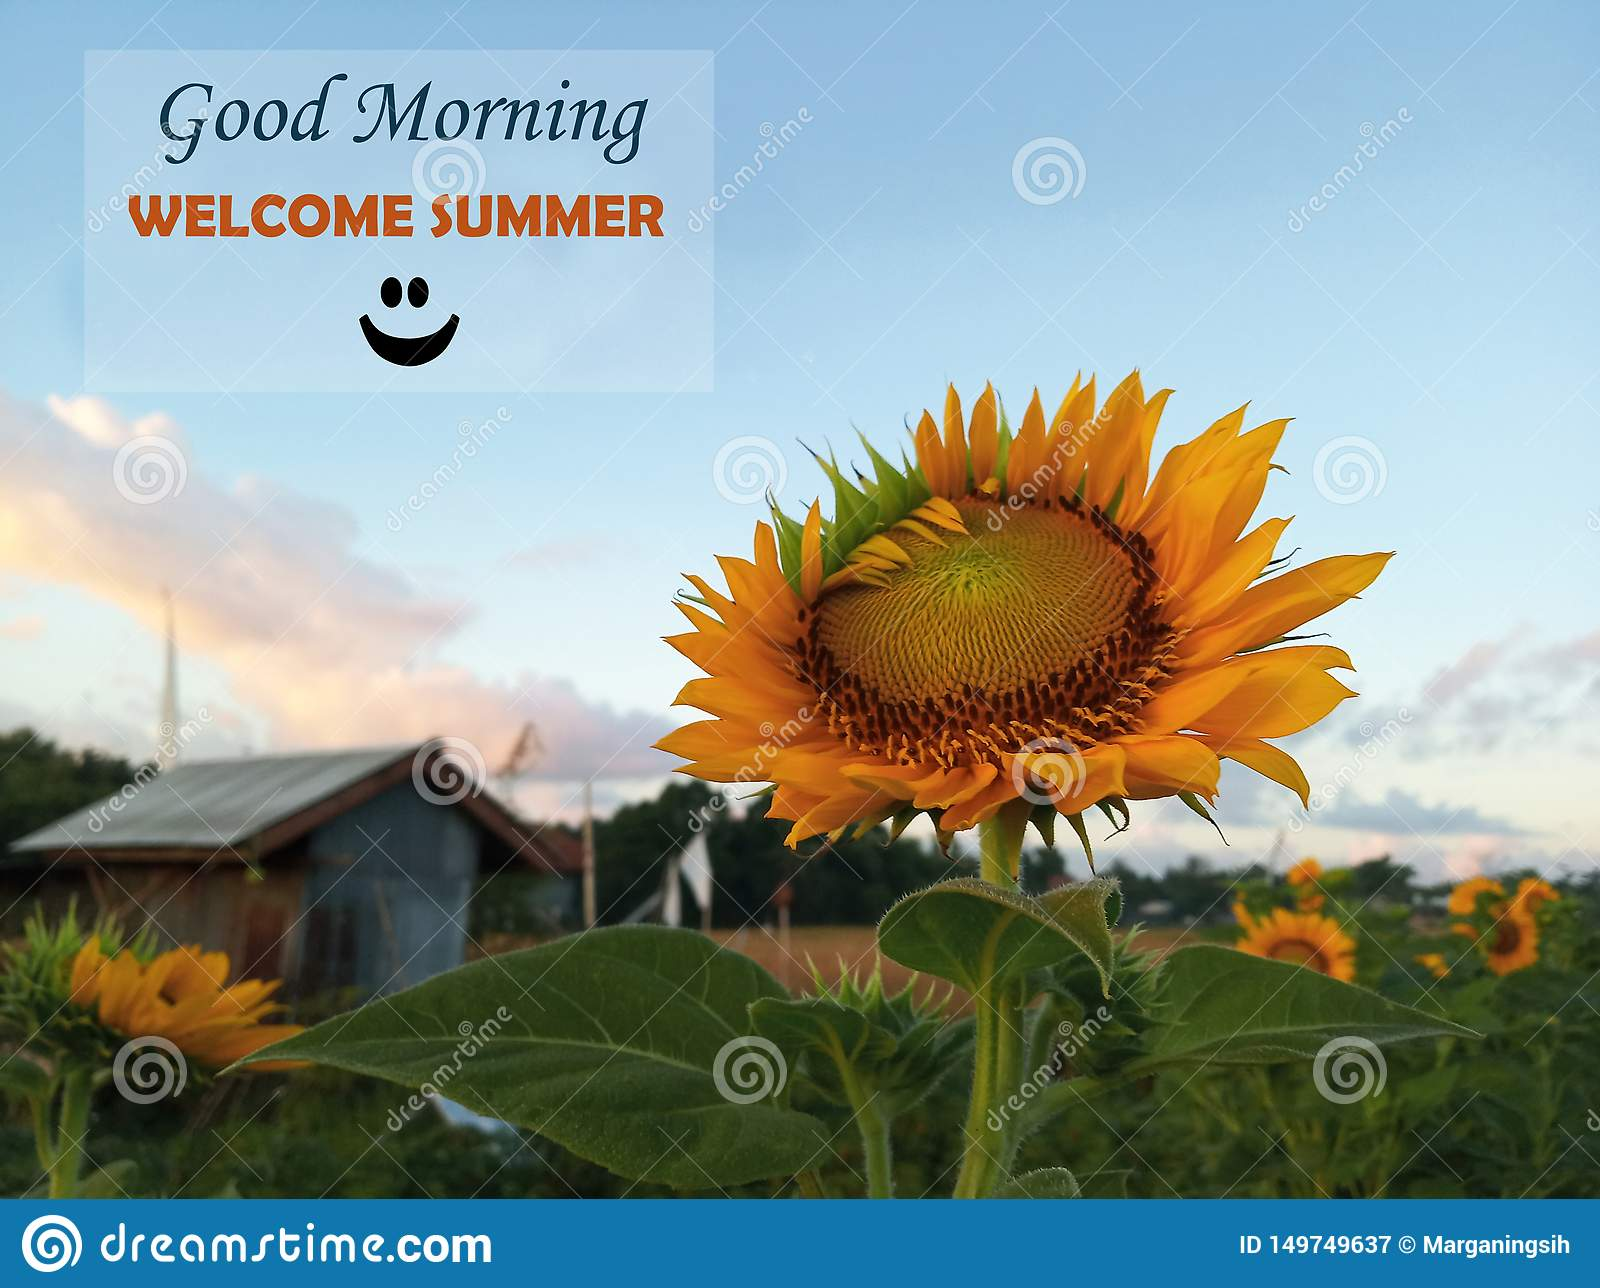 Morning Message  Summer Greetings- Good Morning, Welcome